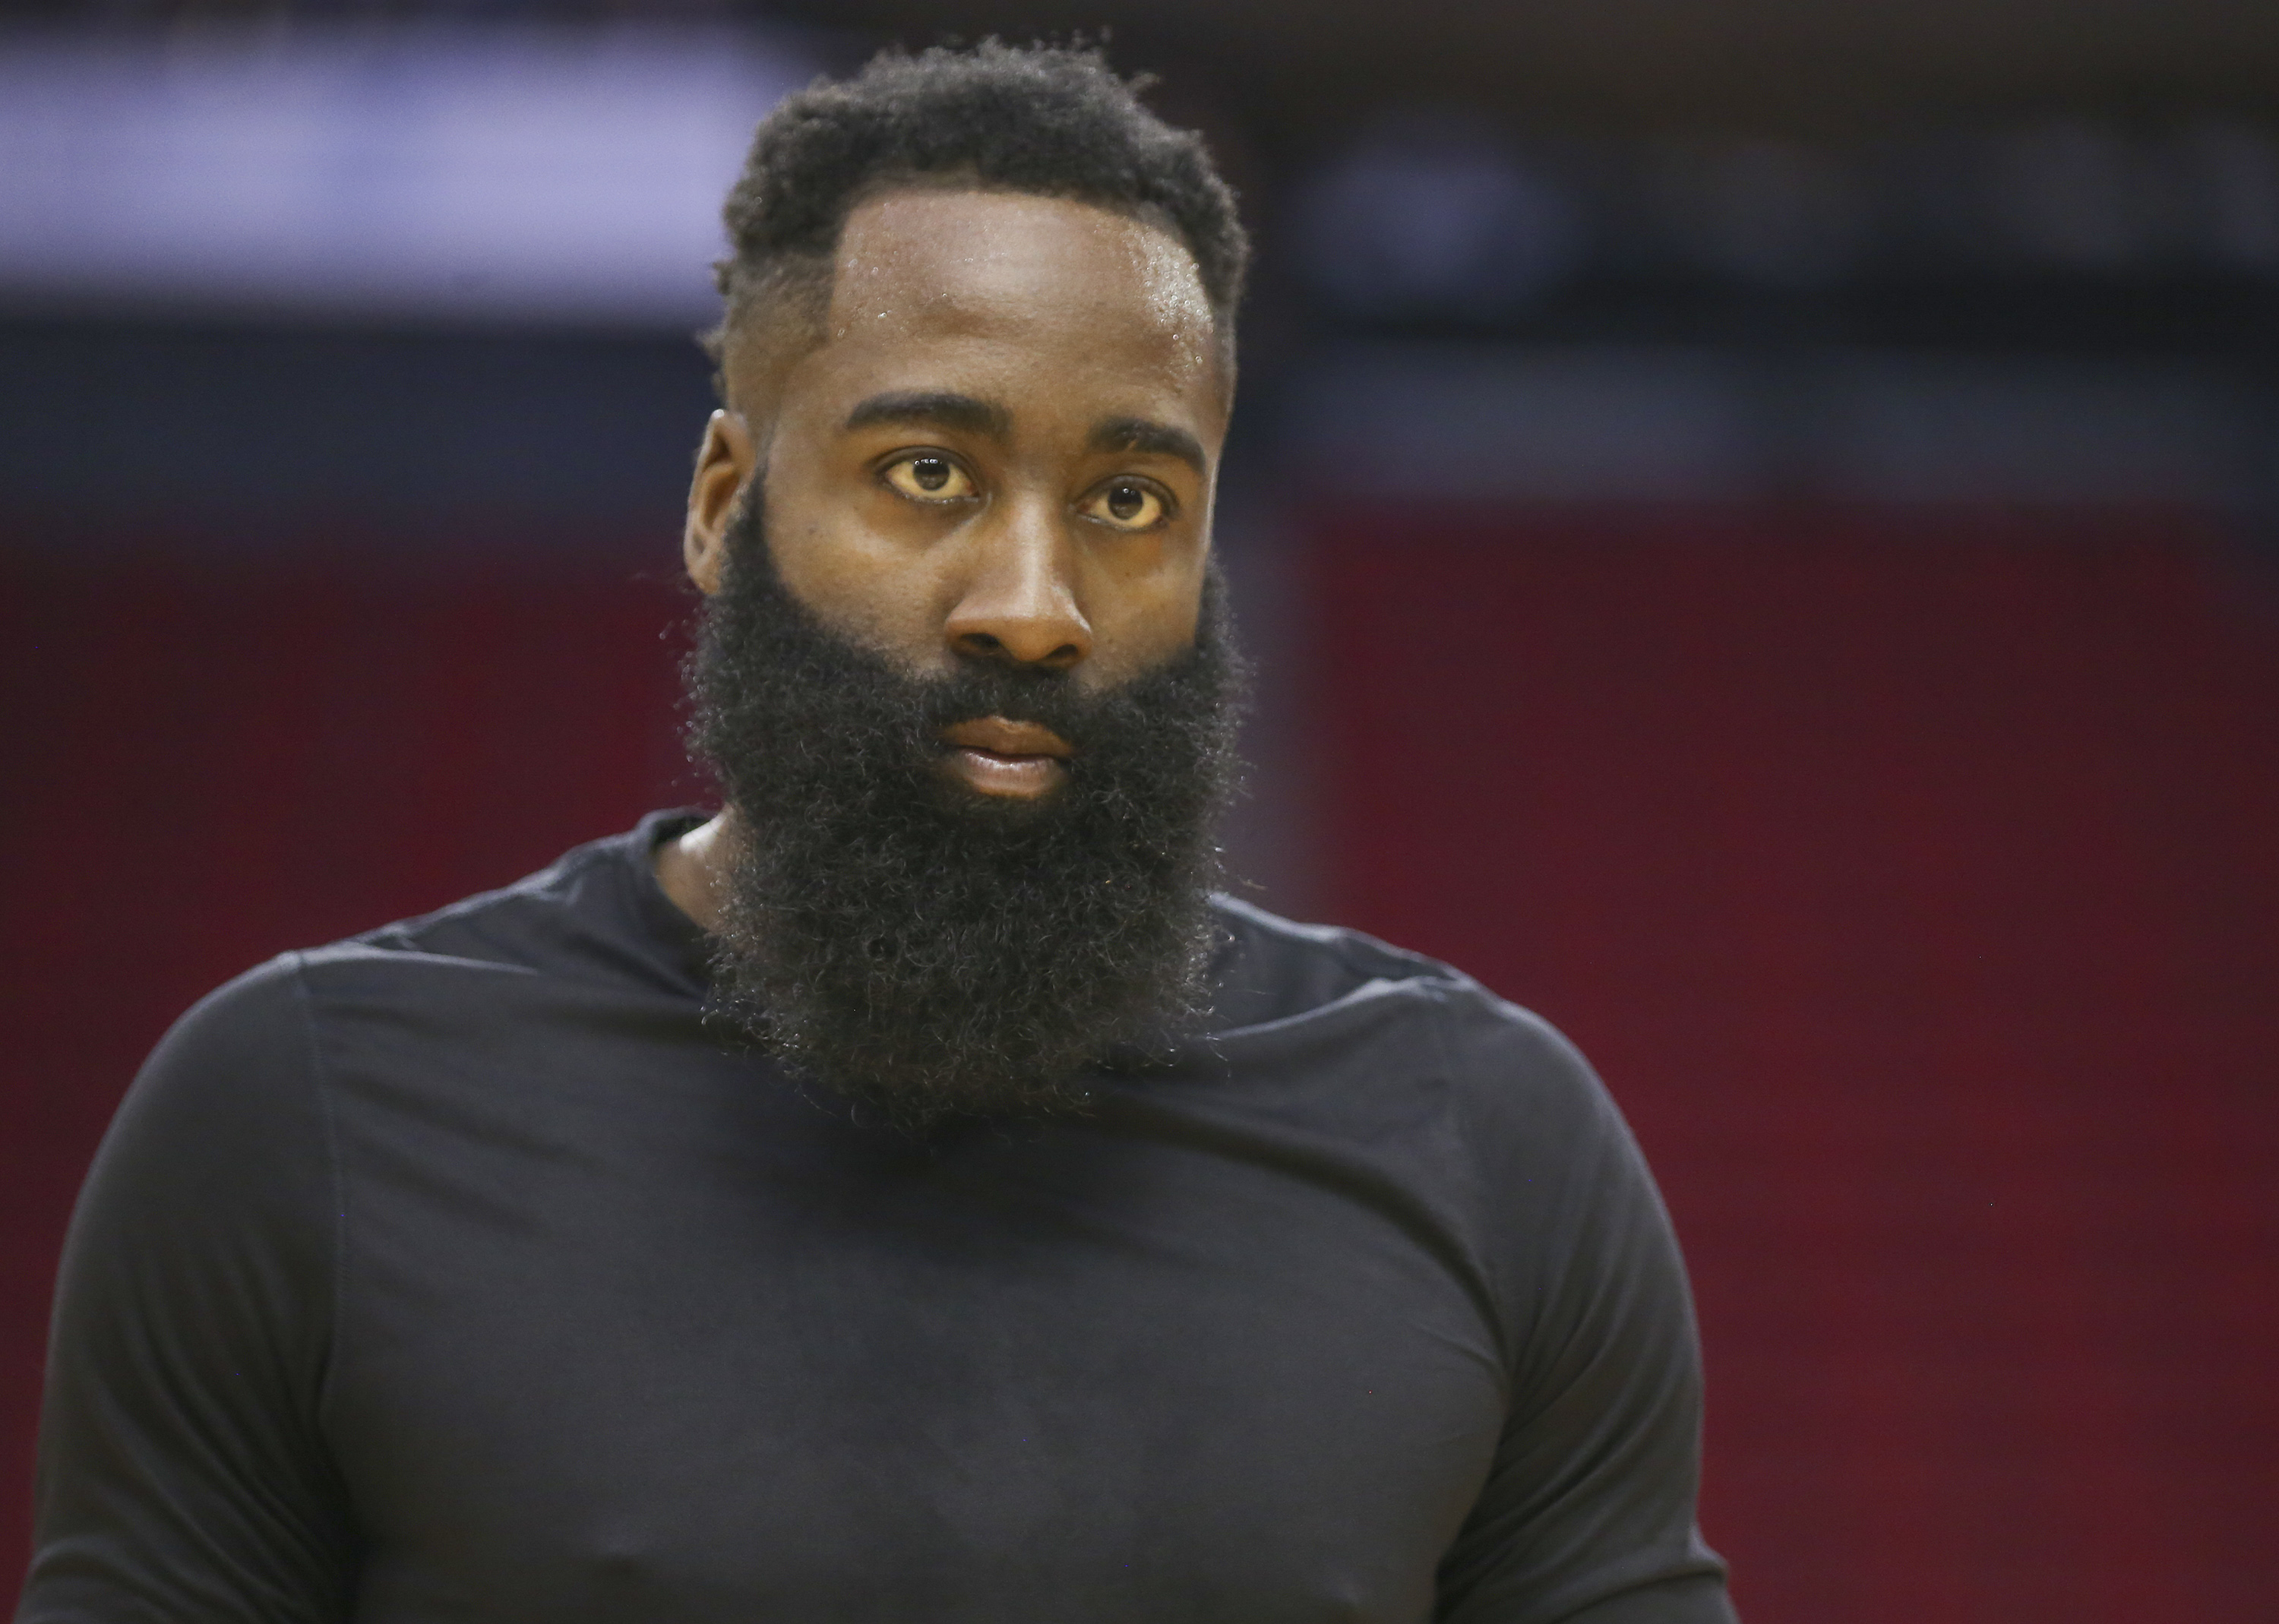 James Harden blasts Giannis Antetokounmpo over All-Star Game comments